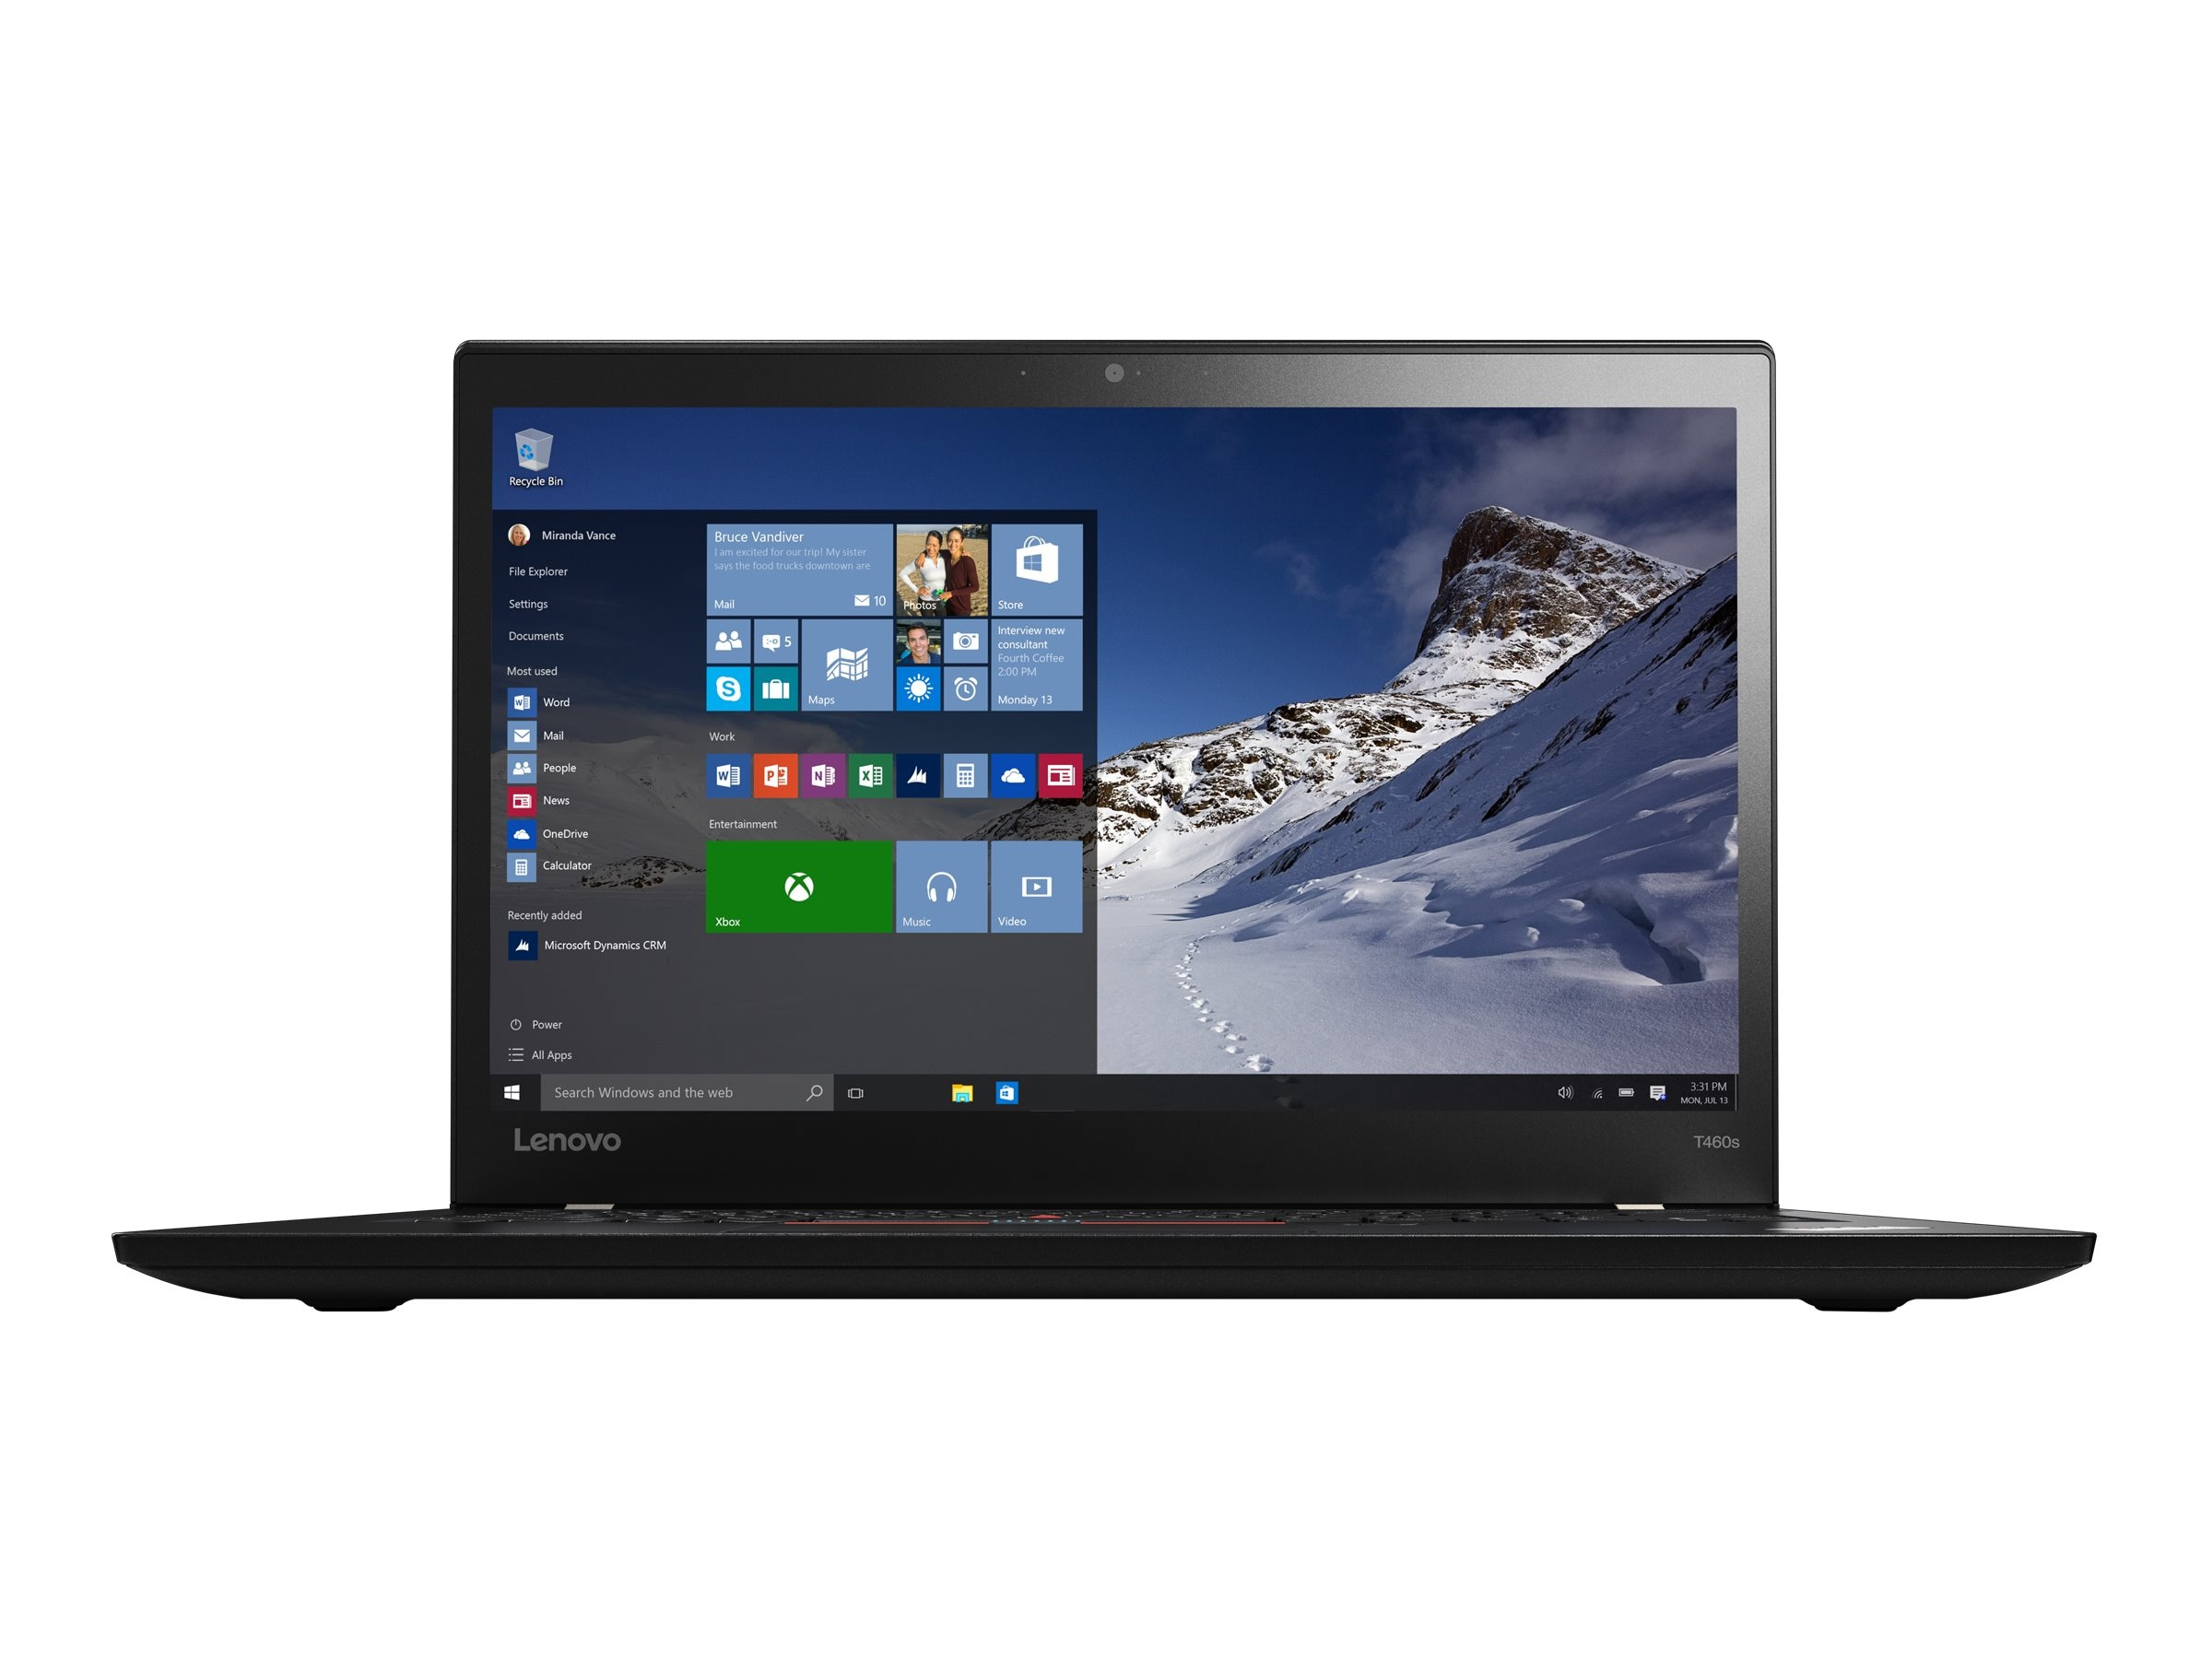 Lenovo TopSeller ThinkPad T460s 2.6GHz Core i7 14in display, 20F9003CUS, 31158636, Notebooks